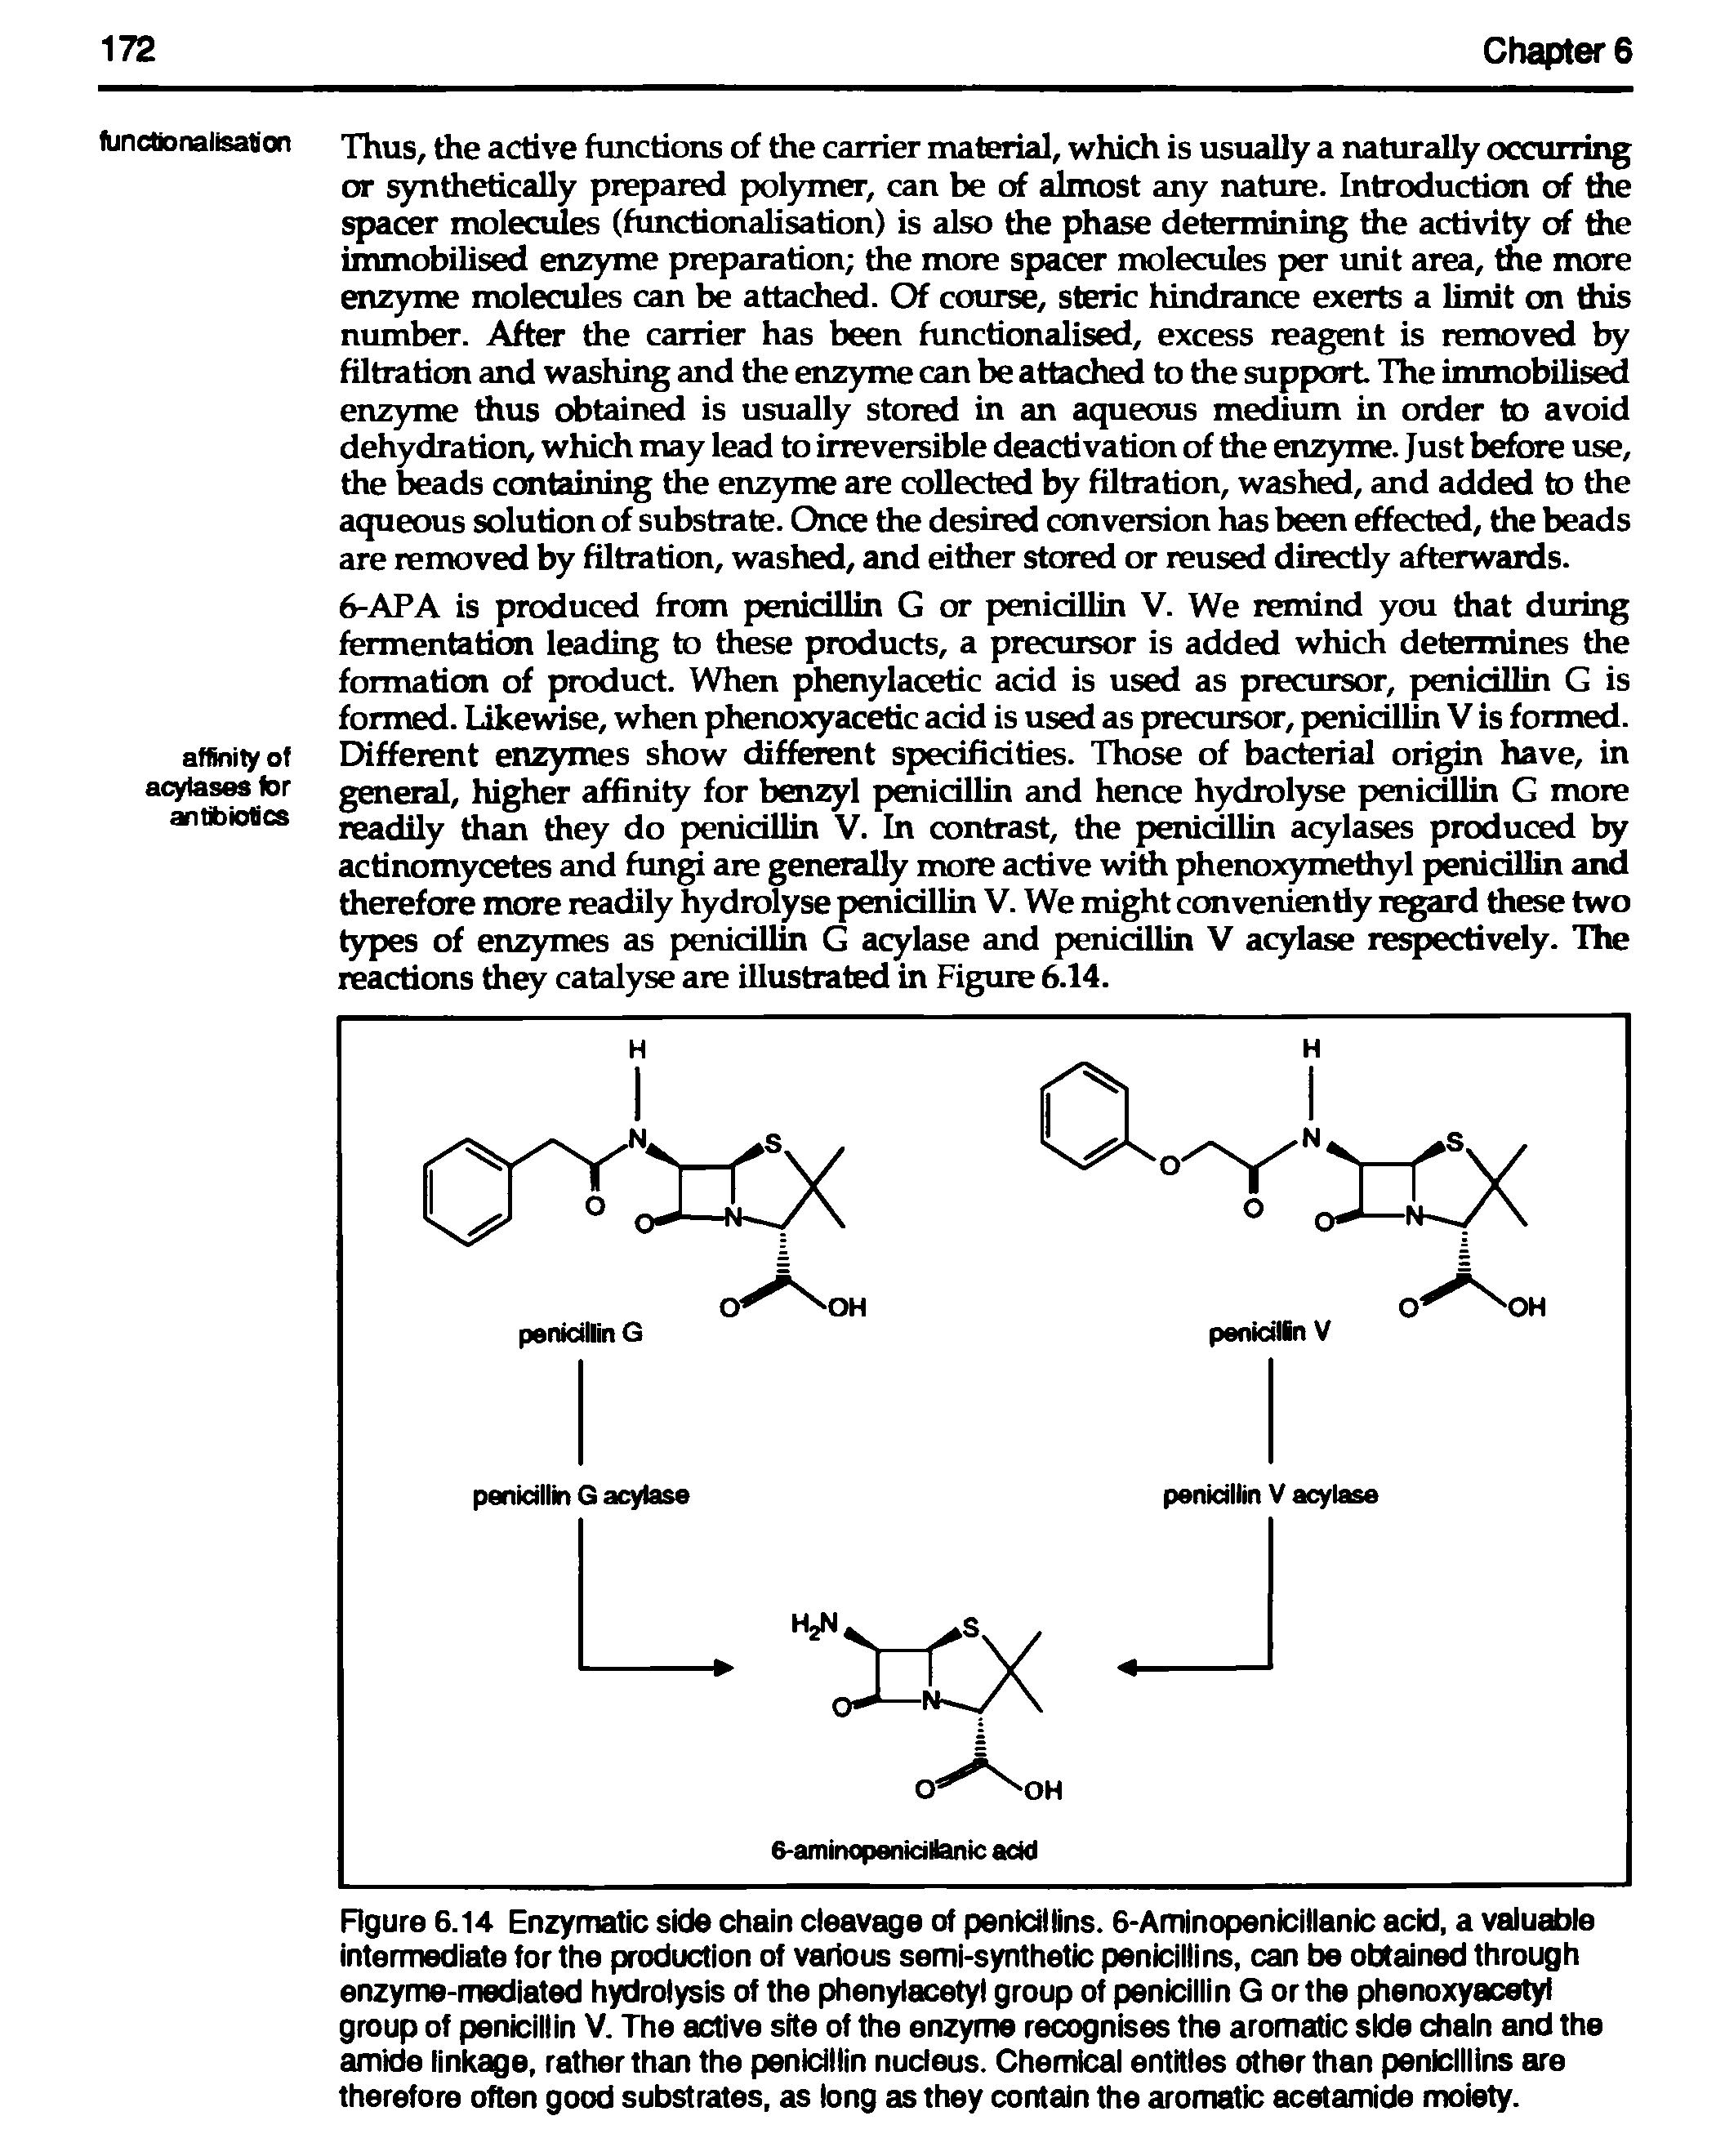 Figure 6.14 Enzymatic side chain cleavage of penicillins. 6-Aminopenicillanic acid, a valuable intermediate for the production of various semi-synthetic penicillins, can be obtained through enzyme-mediated hydrolysis of the phenylacety group of penicillin G or the phenoxyacetyl group of penicillin V. The active site of the enzyme recognises the aromatic side chain and the amide linkage, rather than the penidllin nucleus. Chemical entitles other than penicillins are therefore often good substrates, as long as they contain the aromatic acetamide moiety.